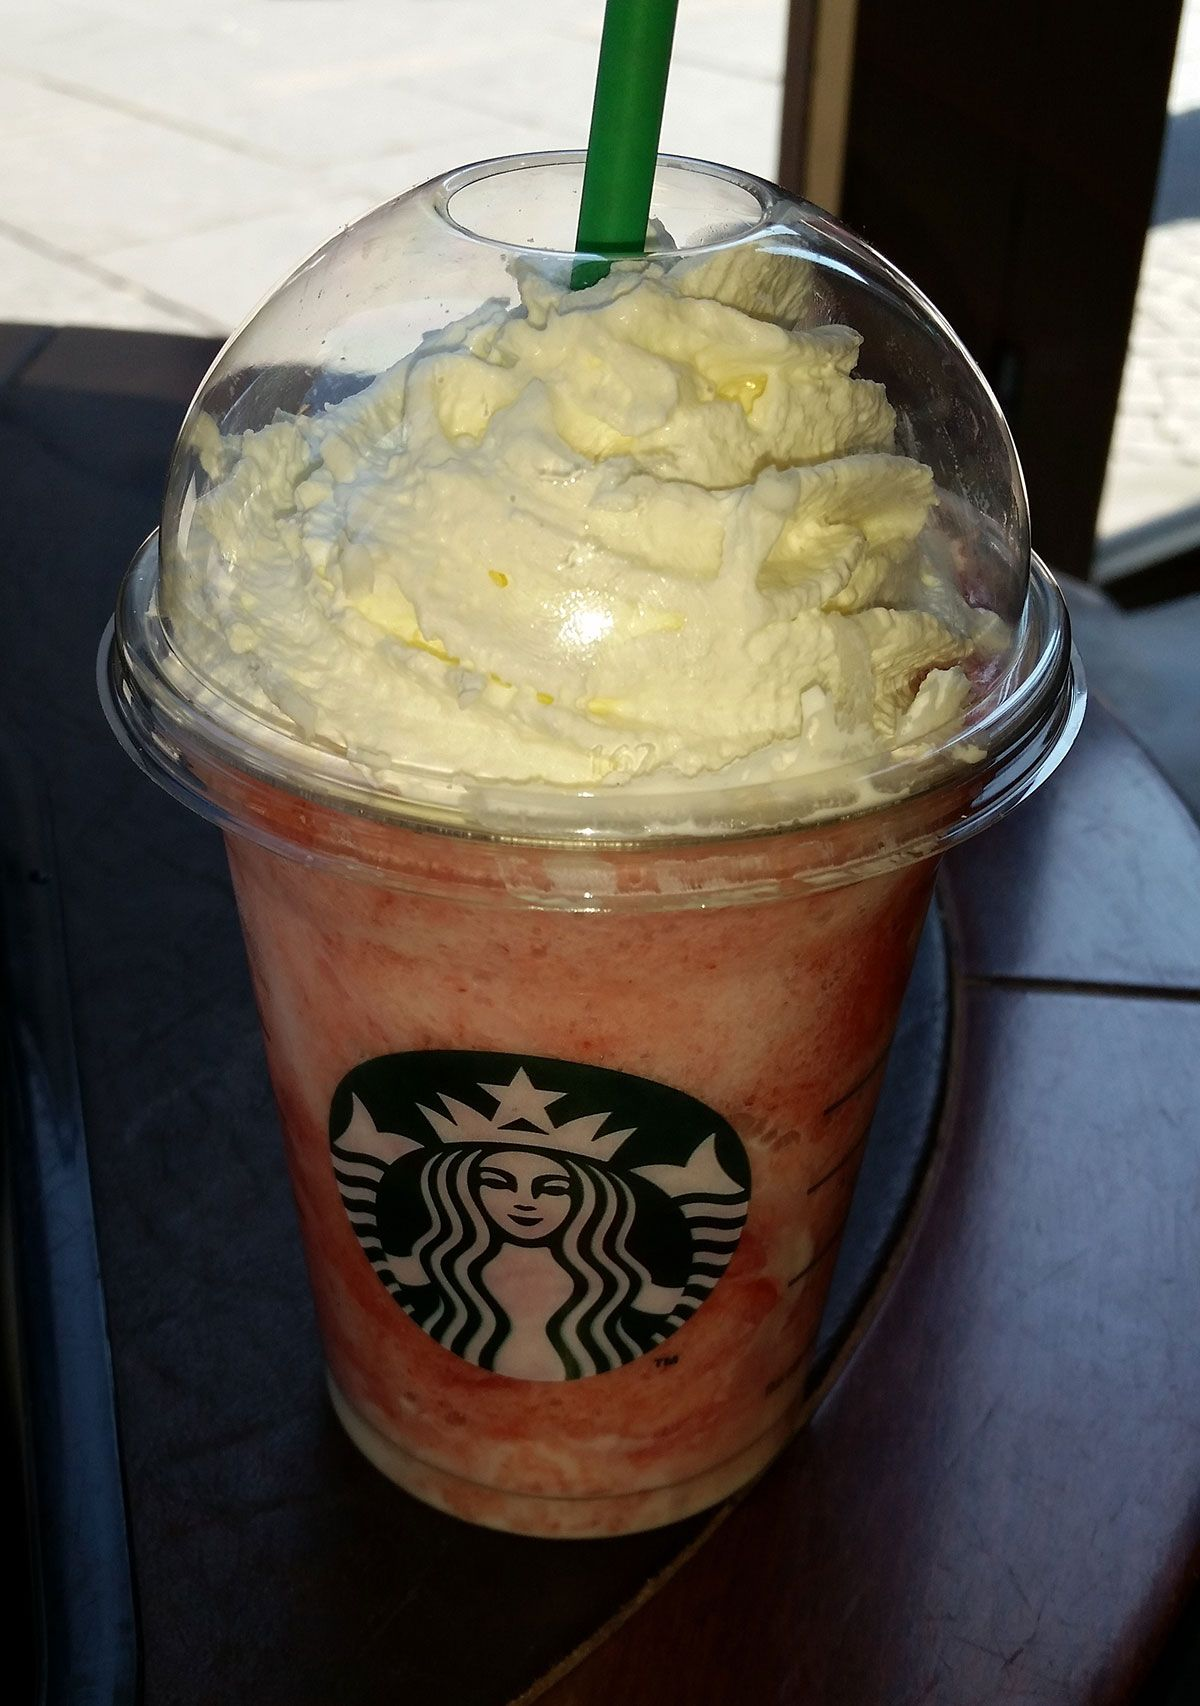 Strawberries and Cream frappachino at Starbucks, Sheffield, South Yorkshire